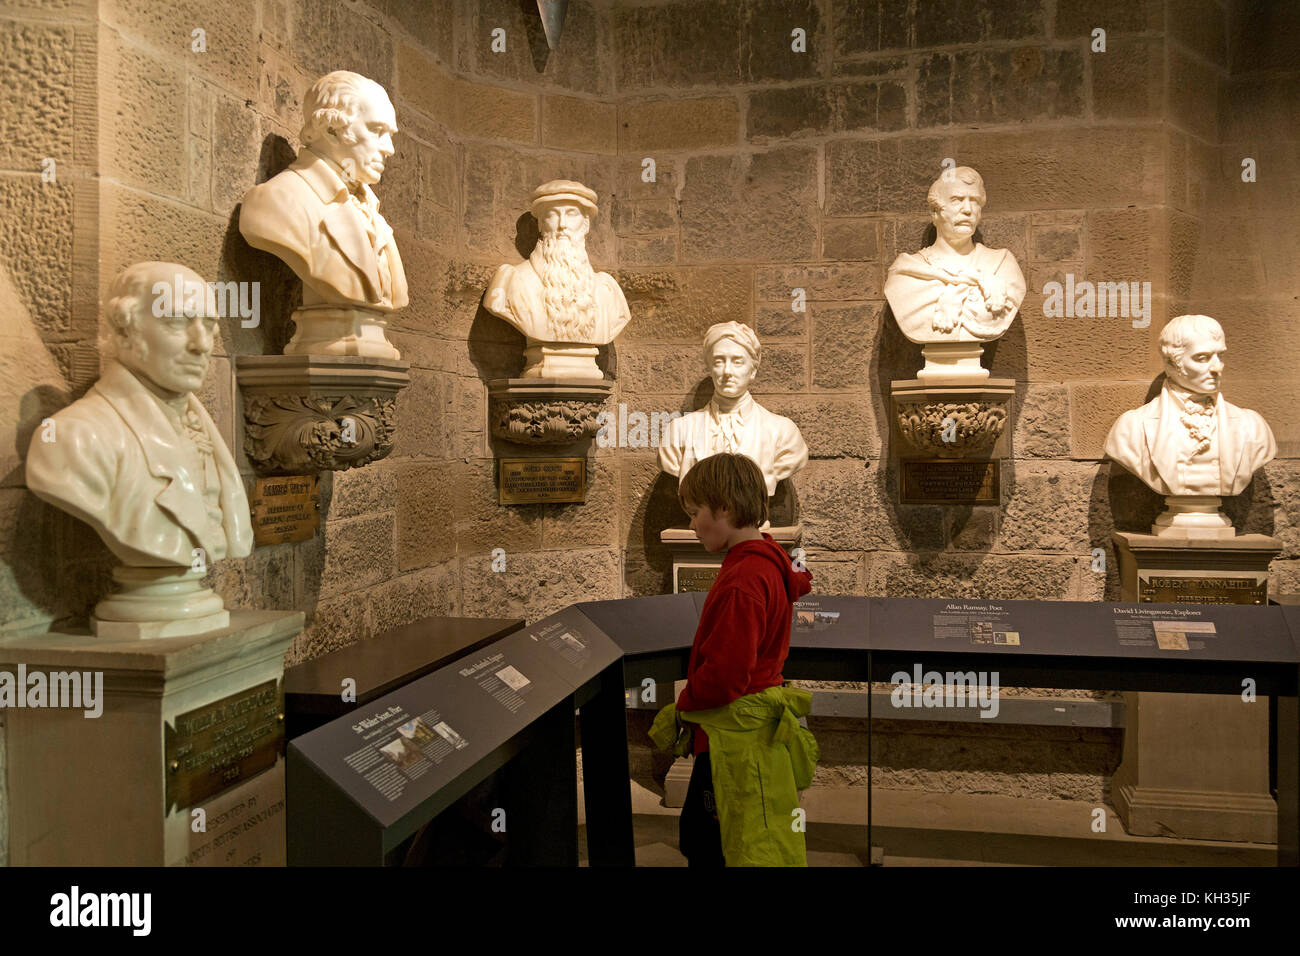 busts inside Wallace Monument, Stirling, Scotland, Great Britain - Stock Image